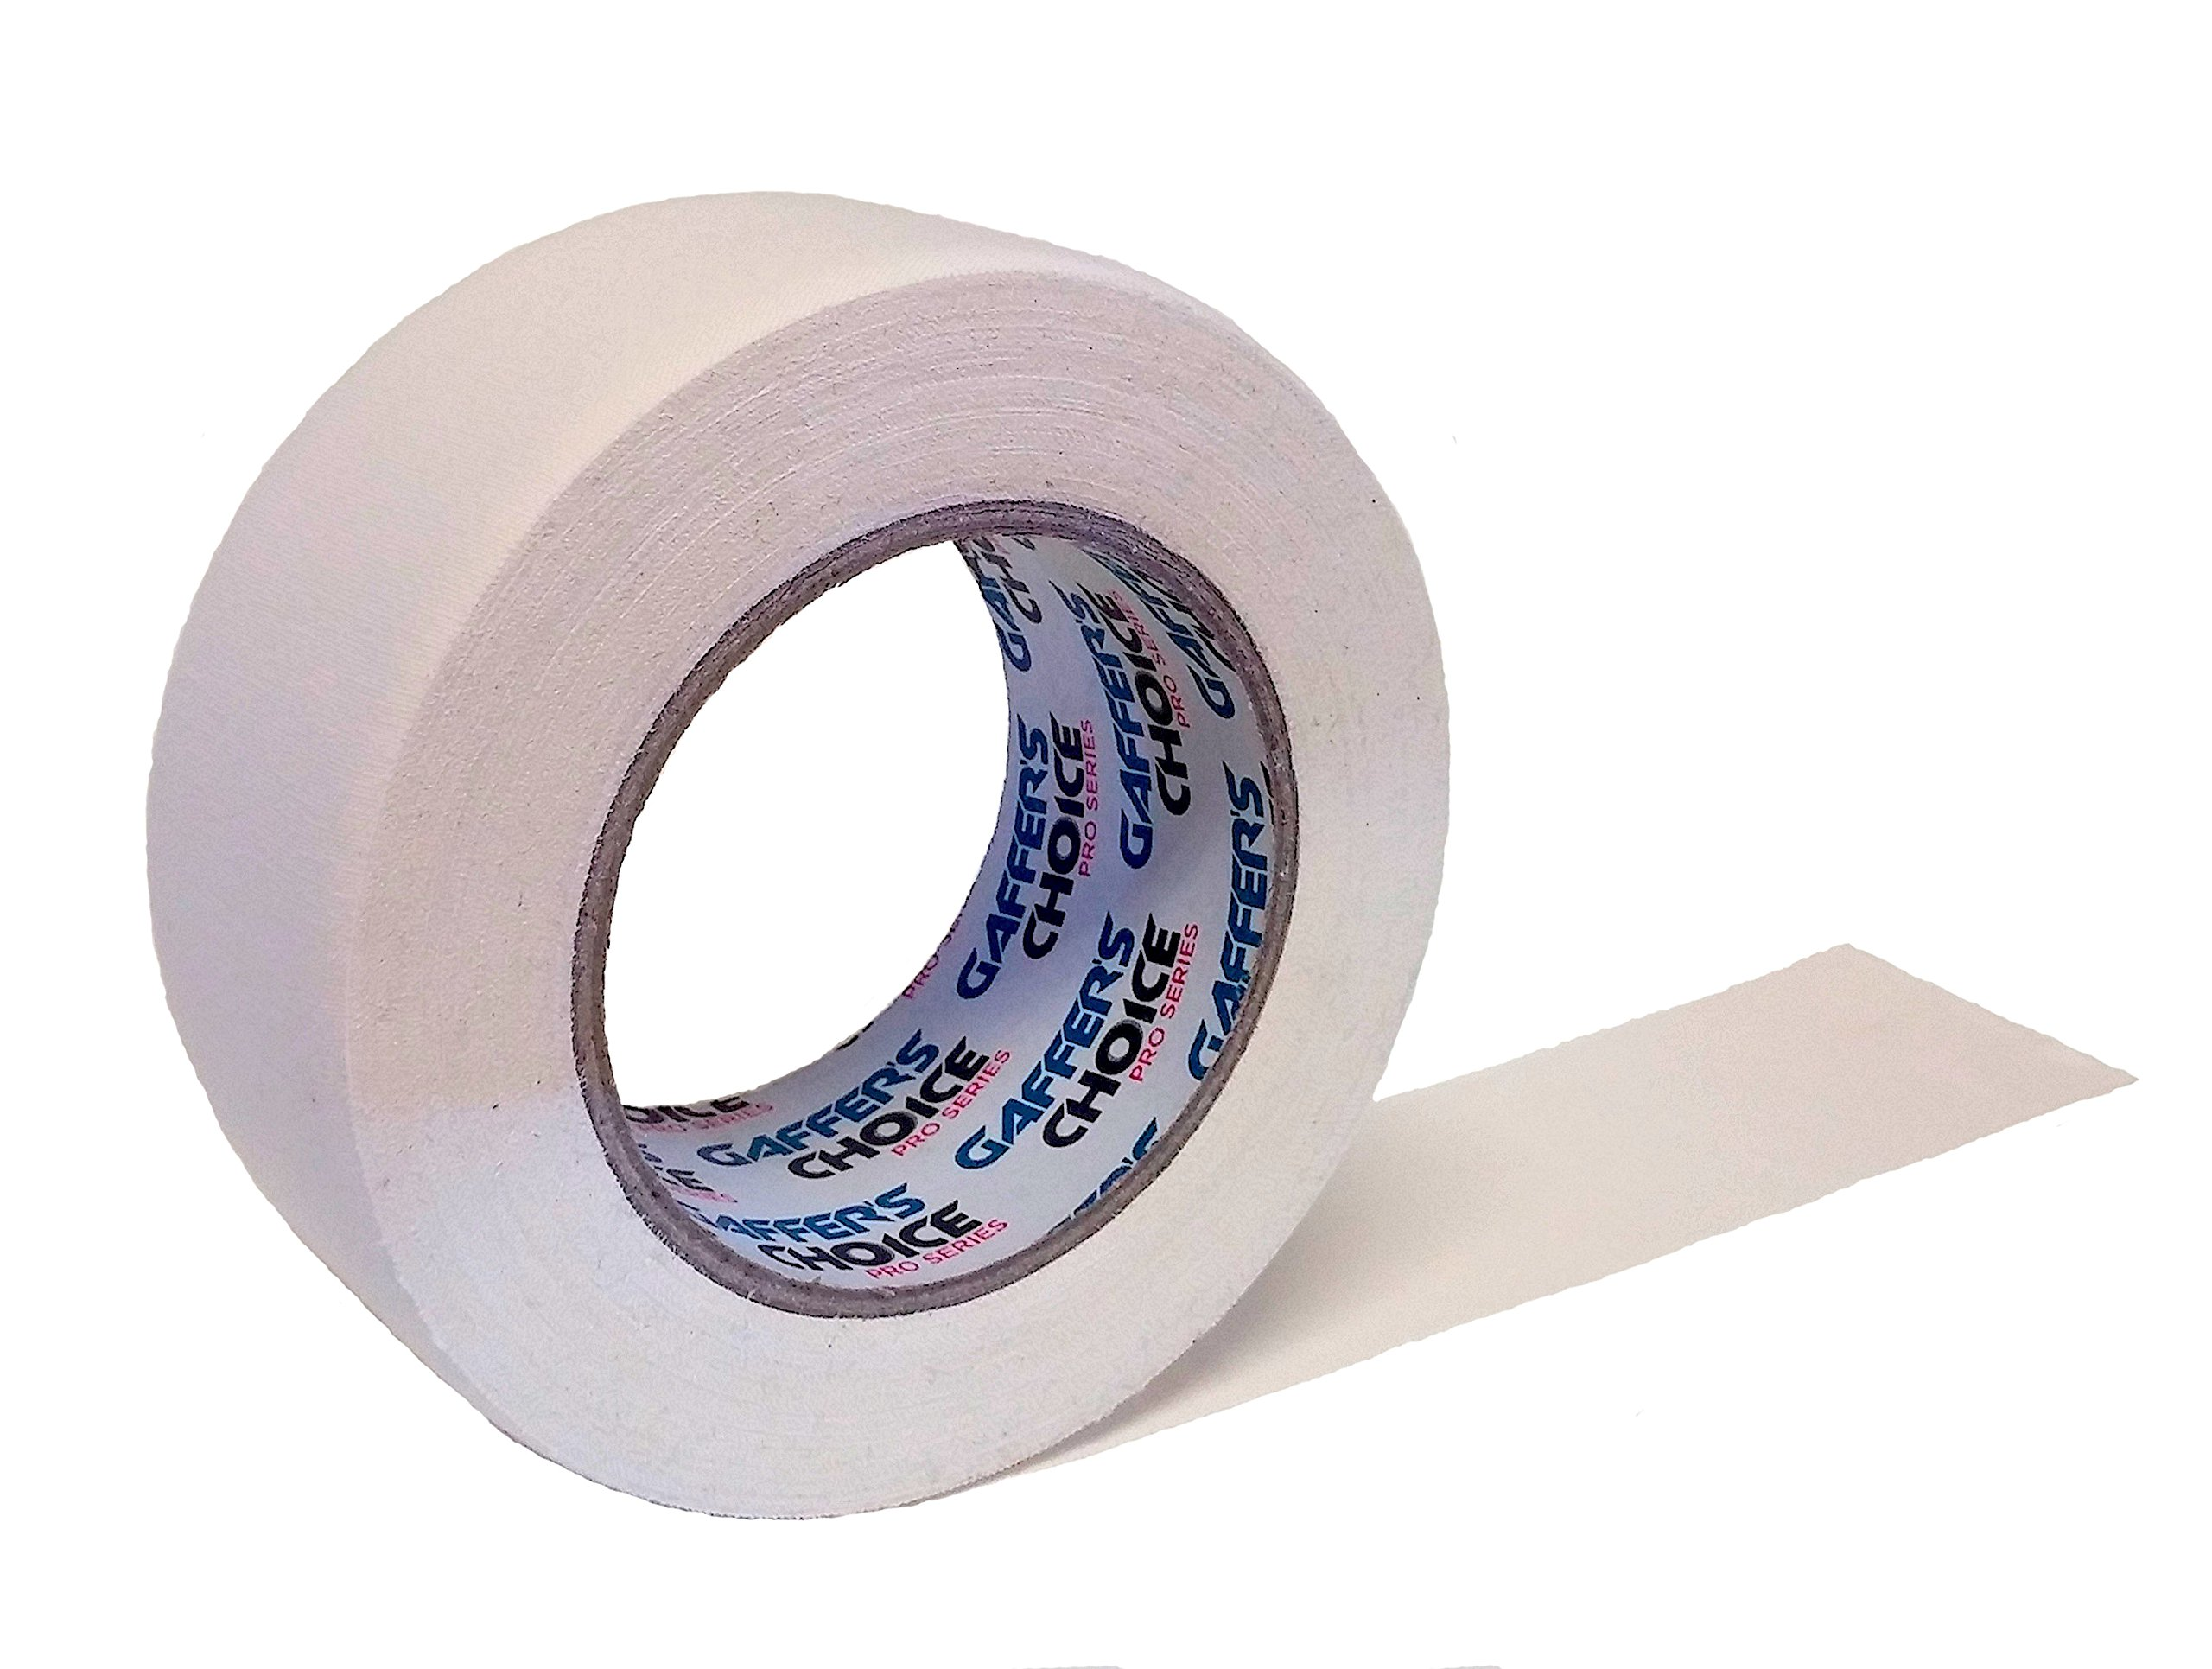 Gaffer Tape 2 inch x 35 yard White by GAFFER'S CHOICE - BONUS 5 YARDS - Adhesive Is Safe & Waterproof - Non-Reflective Multipurpose Gaffer Tape